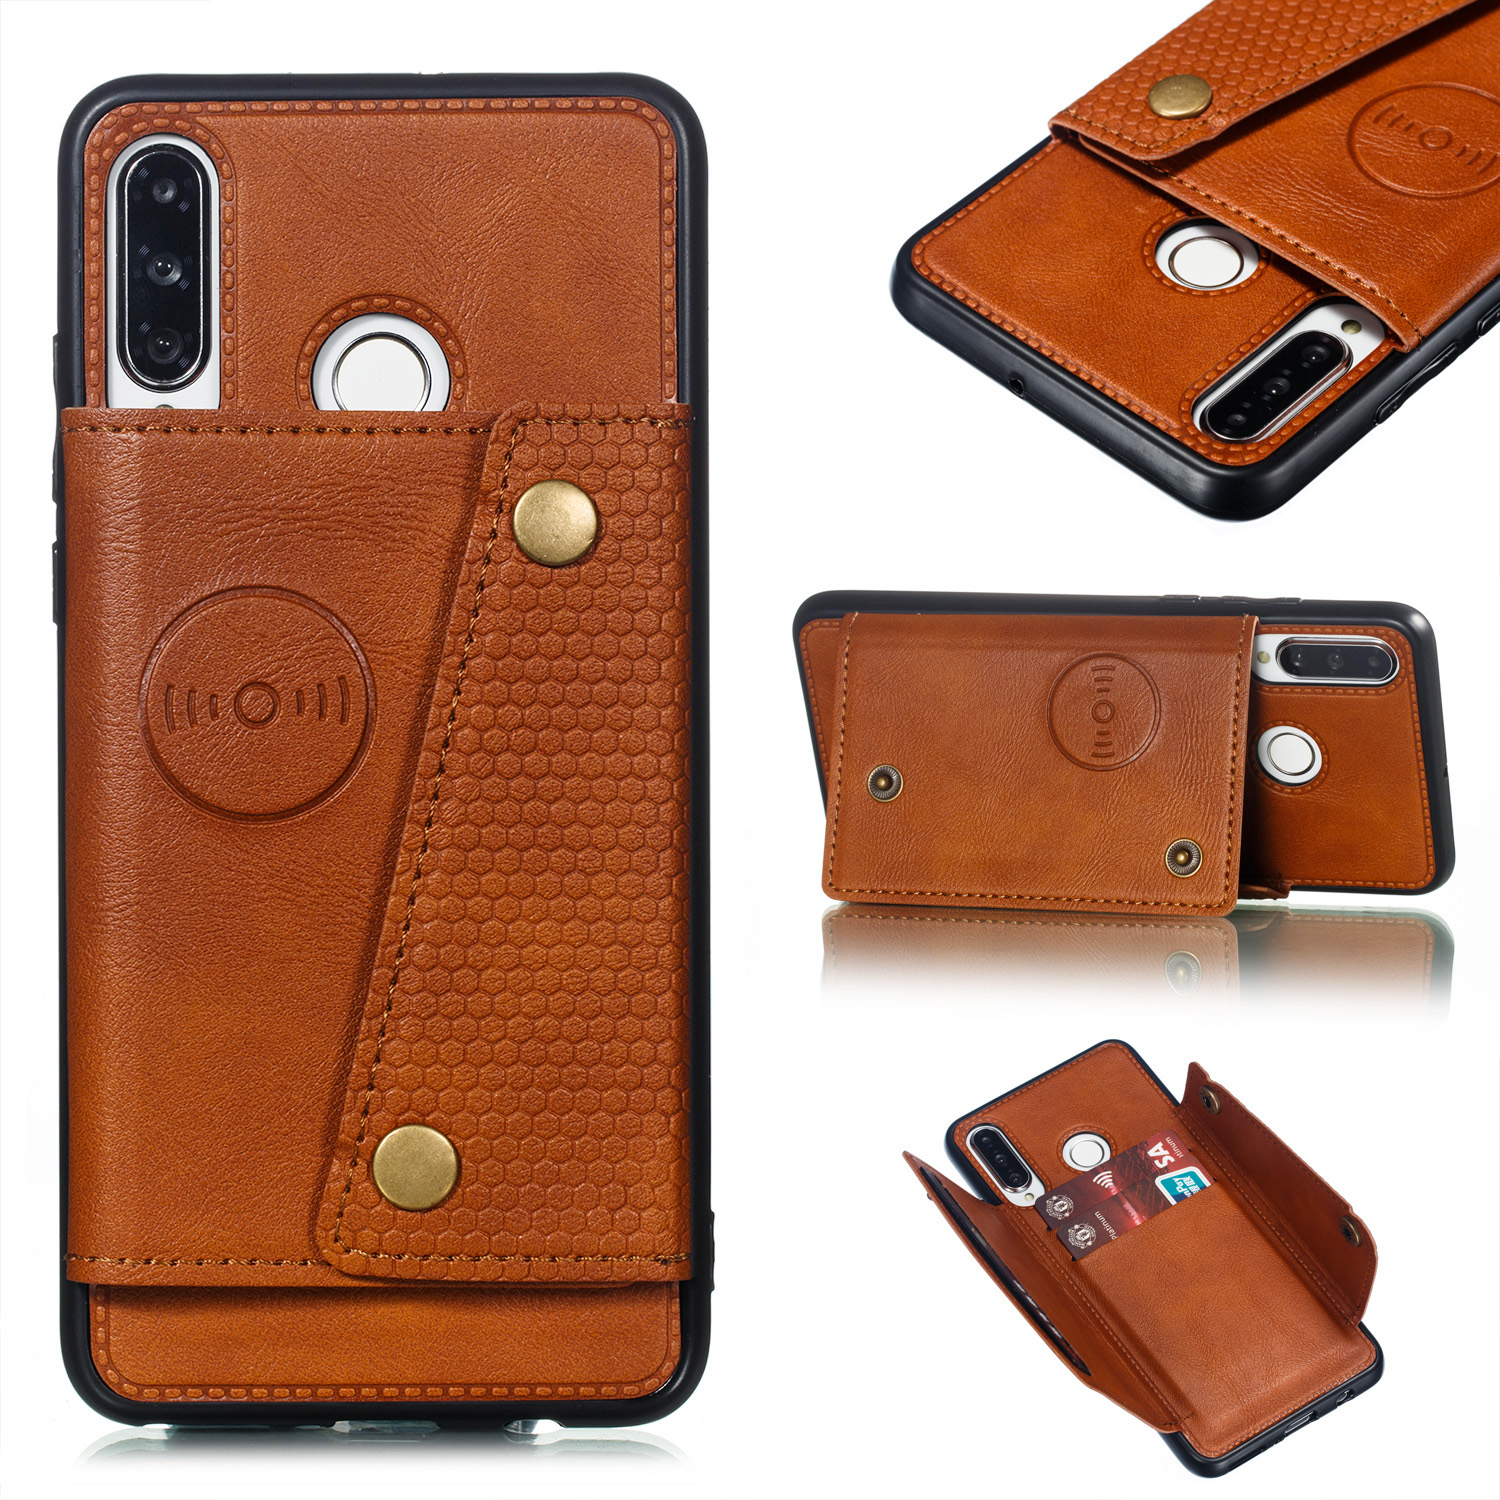 For Huawei P30 lite/nova 4E Double Buckle Non-slip Shockproof Cell Phone Case with Card Slot Bracket Light Brown